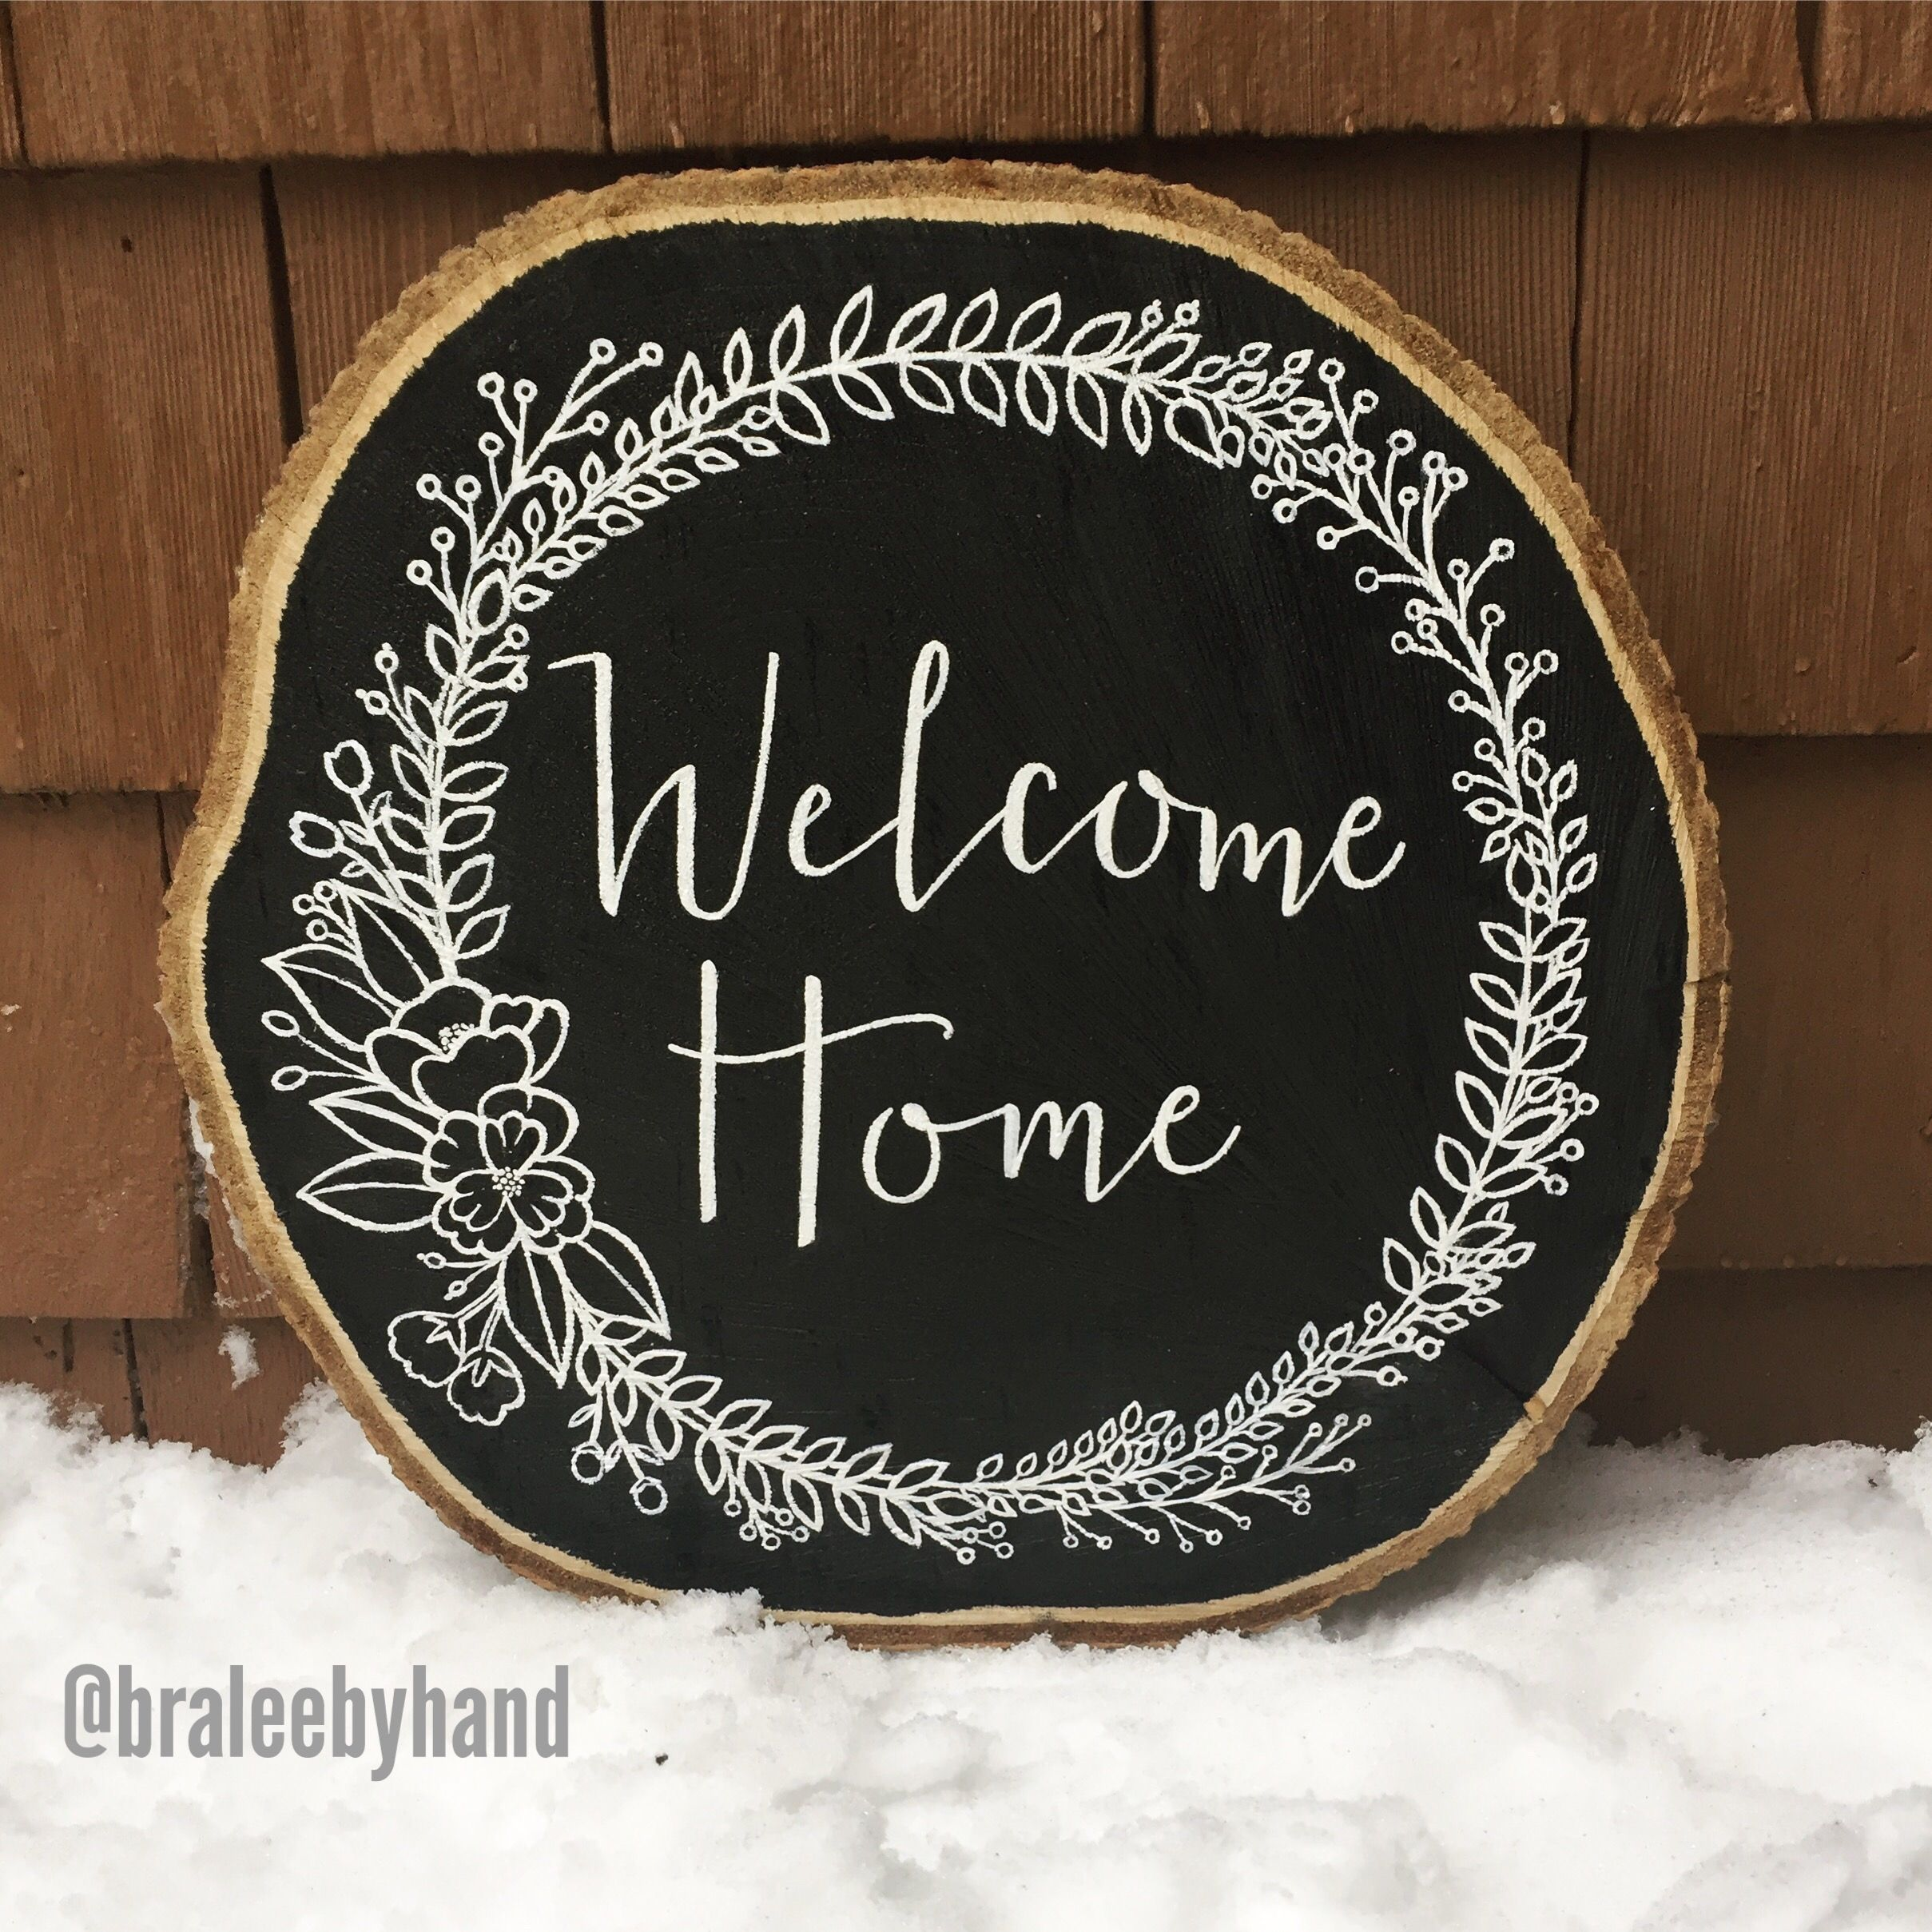 Welcome Home Sign, Wood Slab, Chalkboard Paint, White Acrylic Paint,